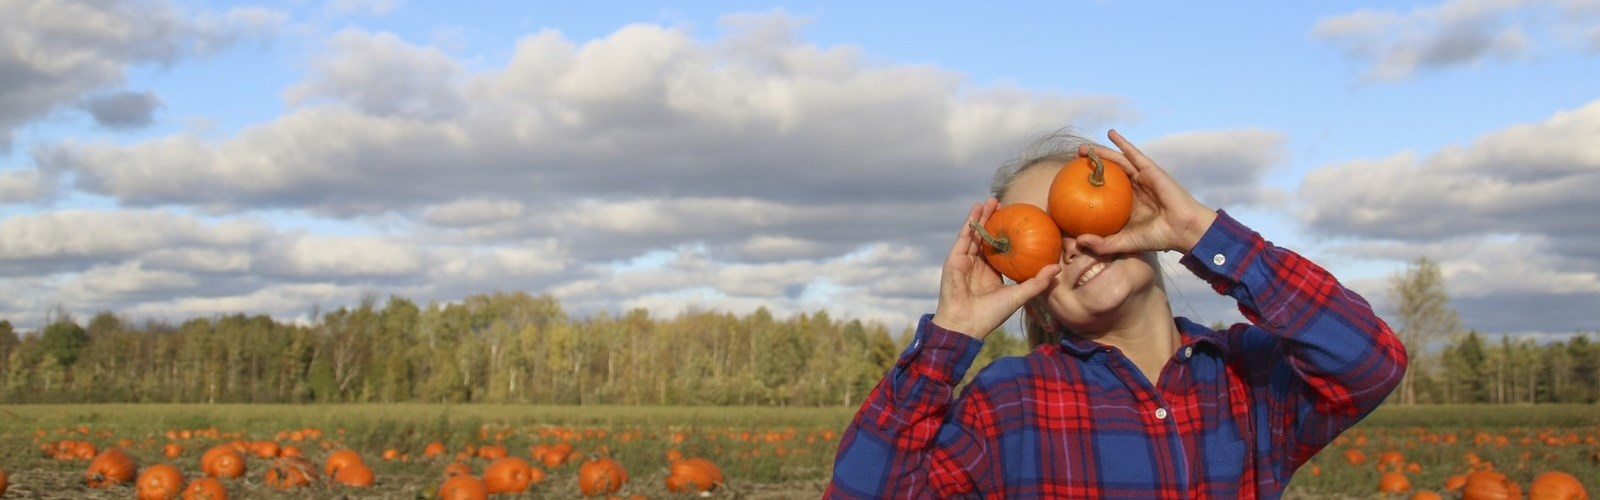 Girl in pumpkin fields holding up two pumpkins to her eyes